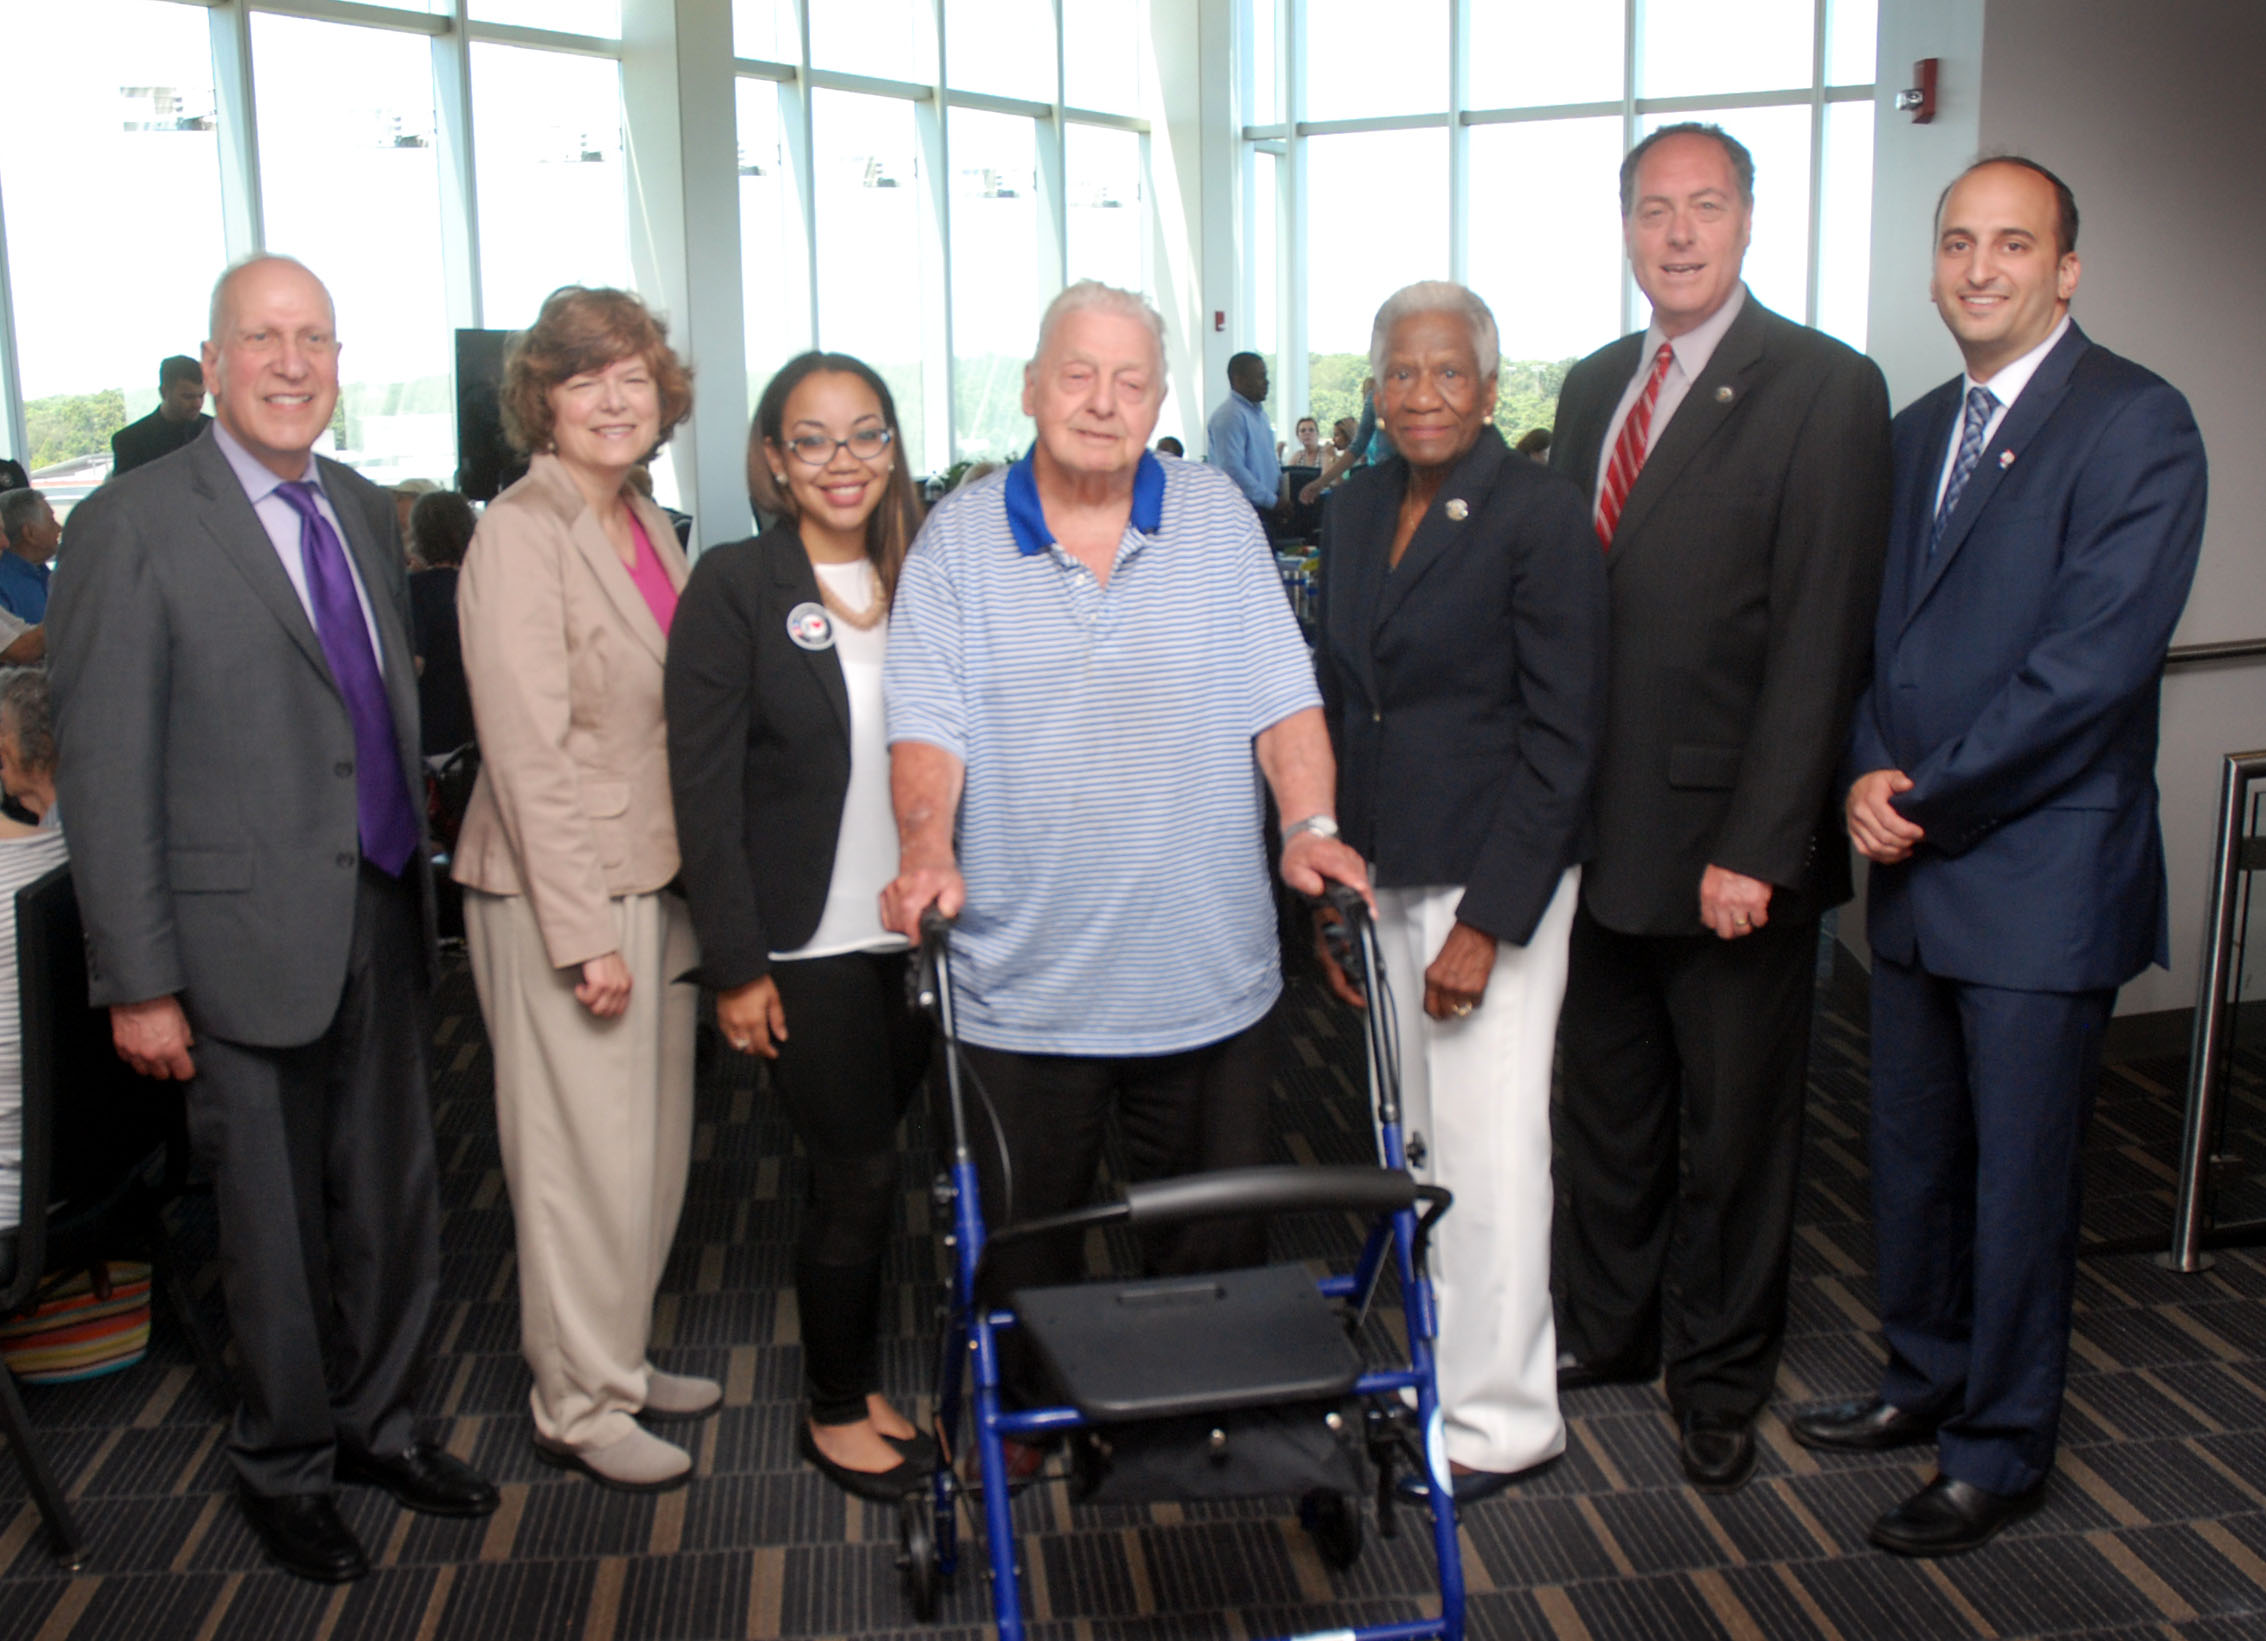 New jersey union county cranford - Union County Nj Union County Freeholder Chairman Bruce H Bergen And Freeholders Bette Jane Kowalski And Vernell Wright Joined Jewish Family Service Of